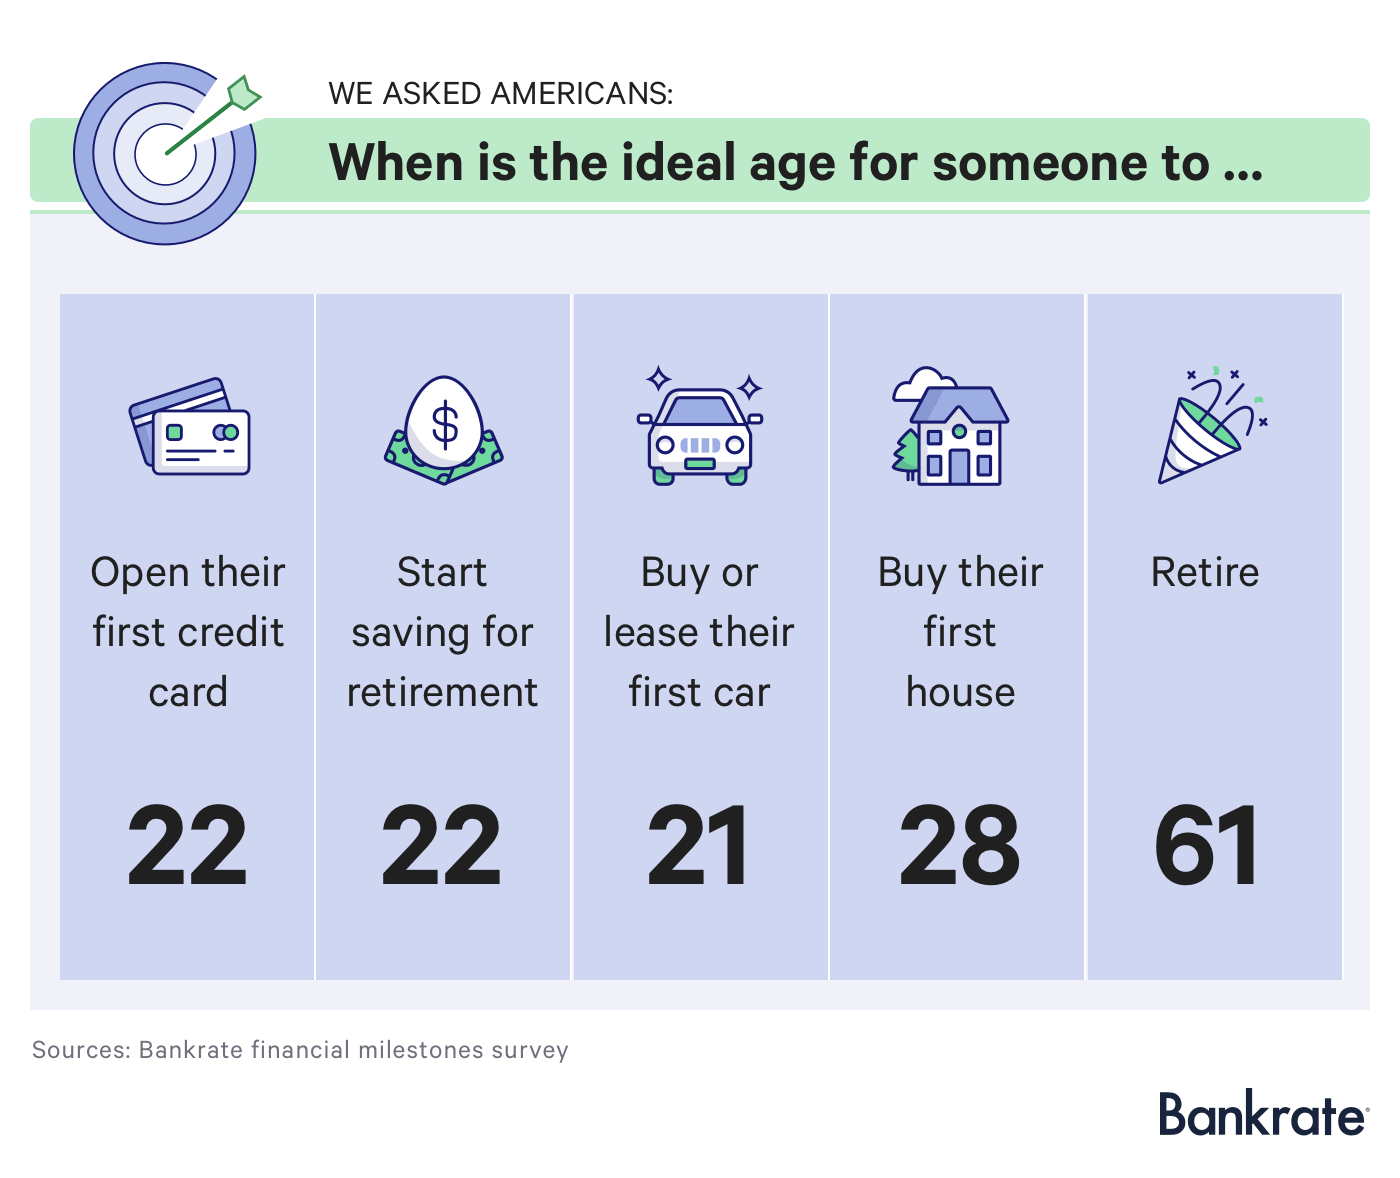 Financial milestones survey: When is the ideal age for someone to ...